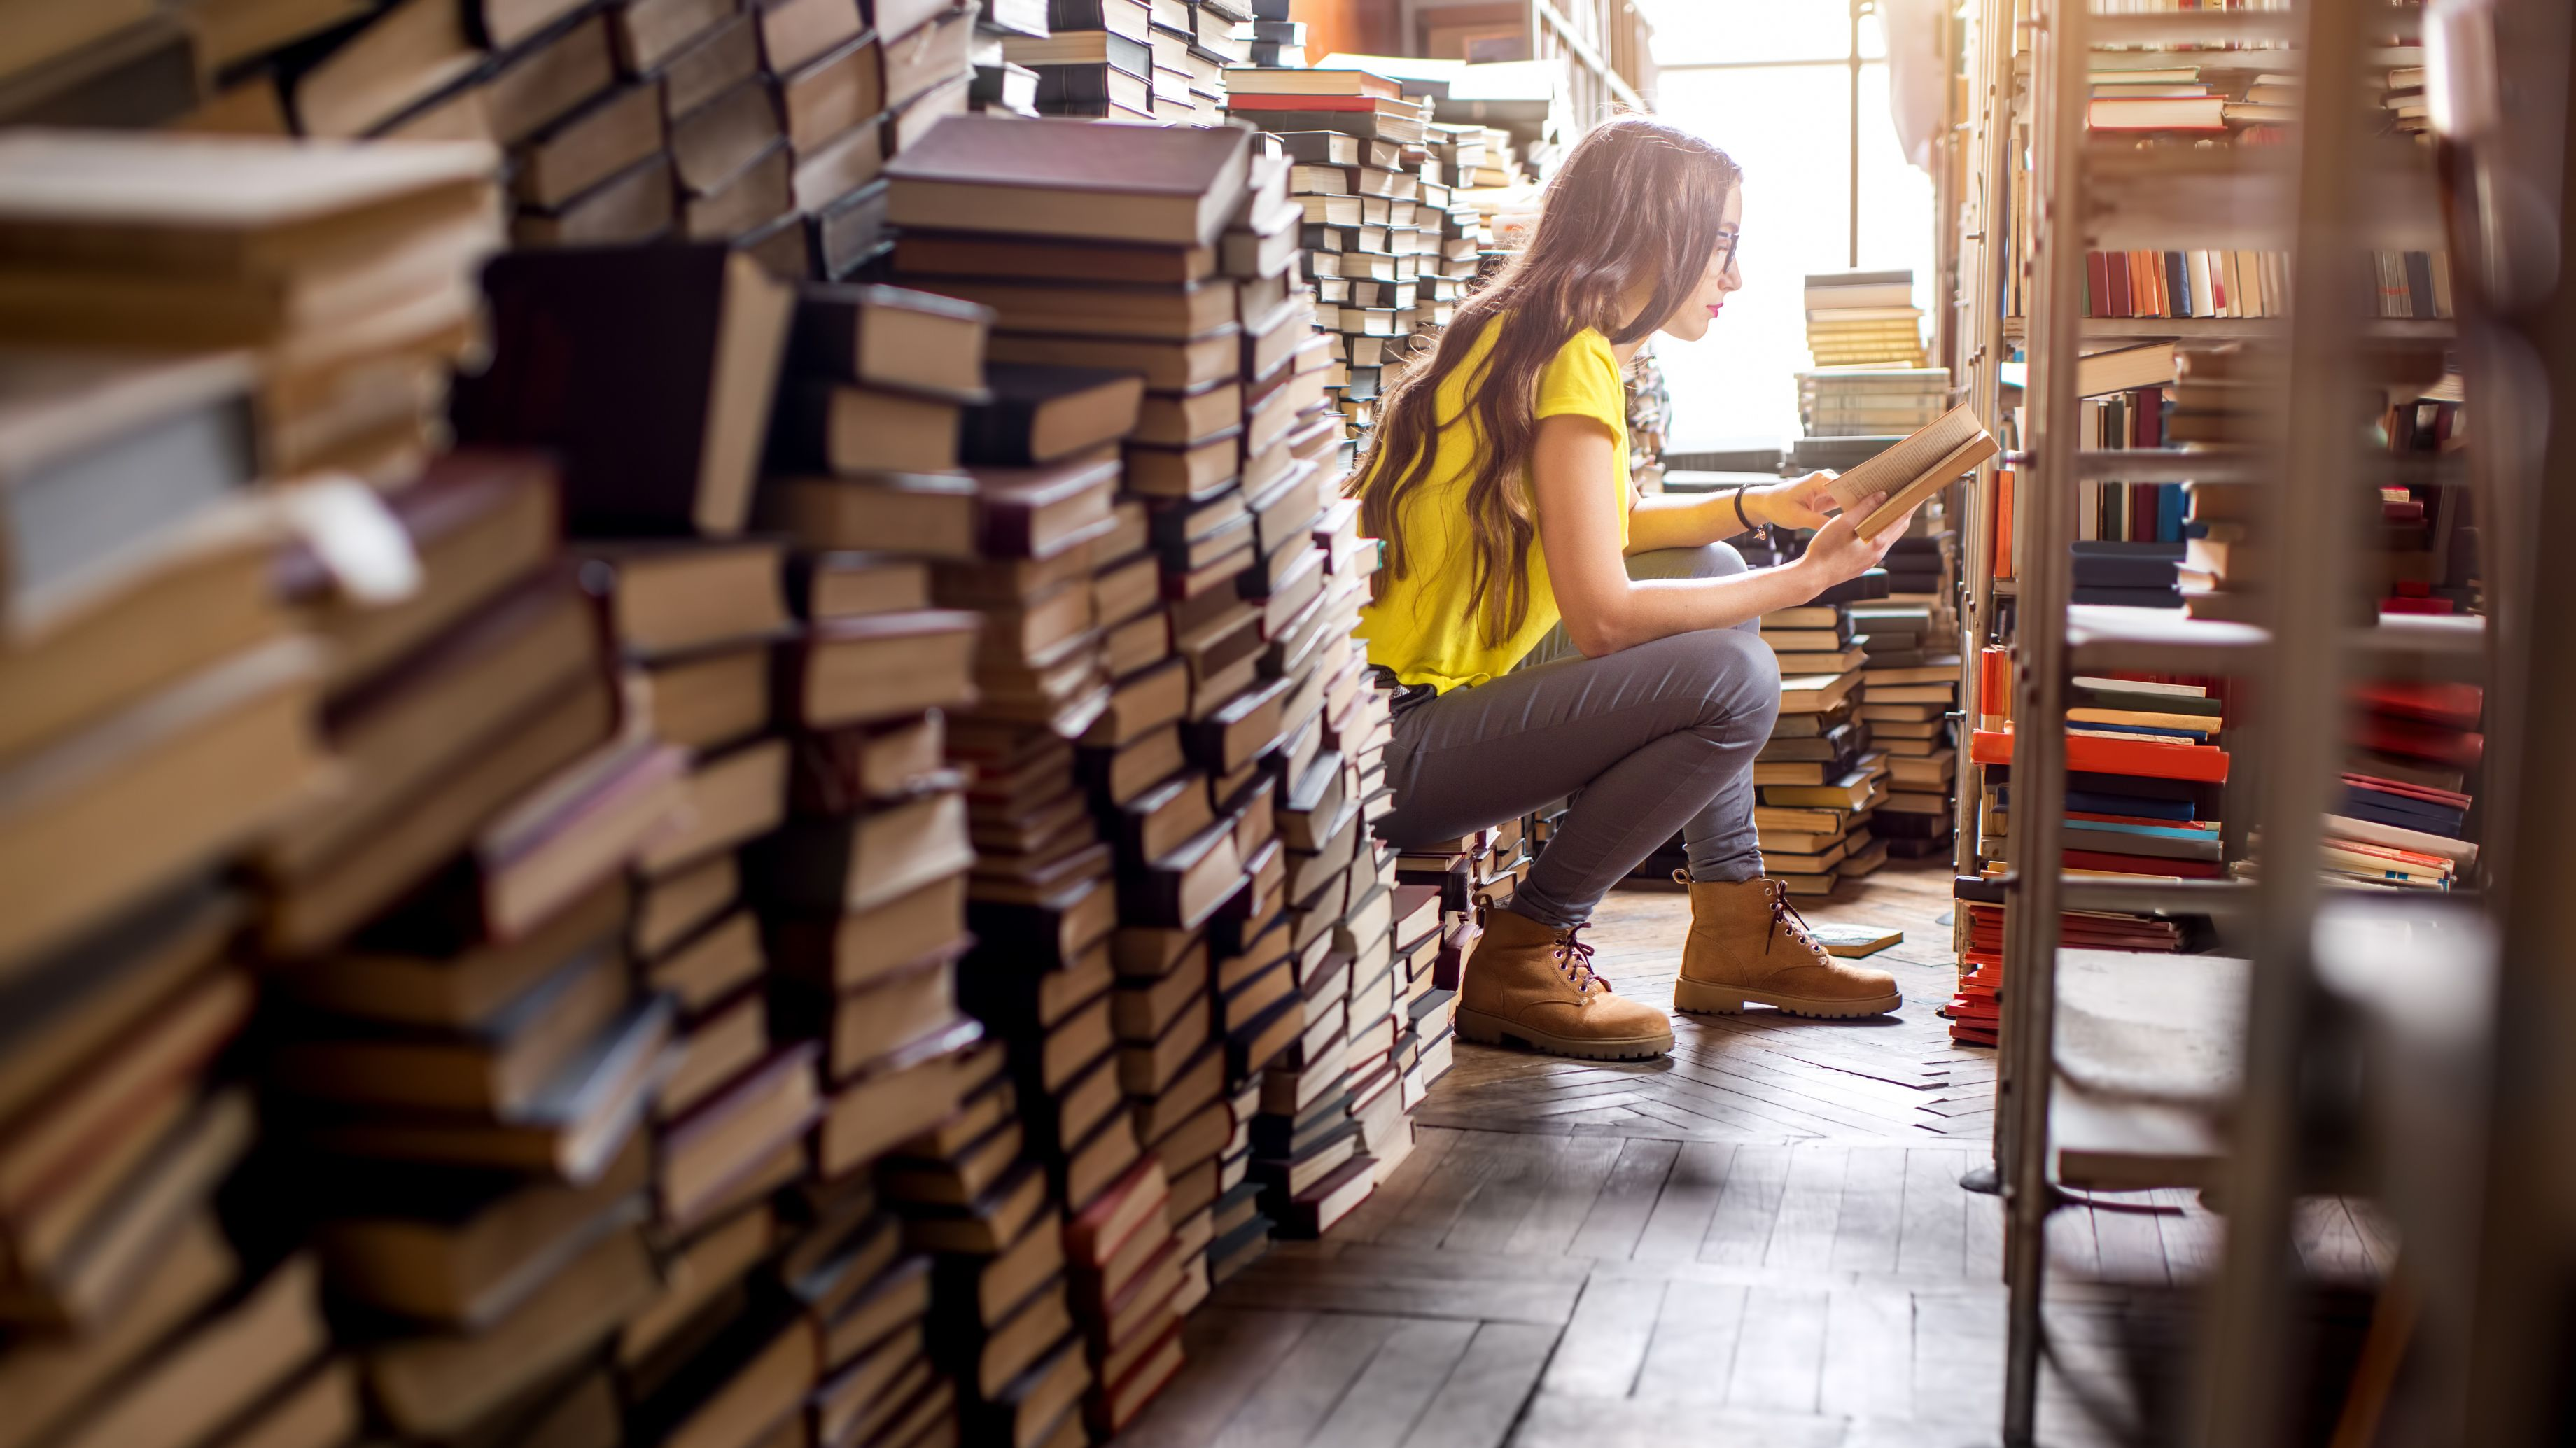 Buy Books and Never Read Them? There's a Japanese Word for That